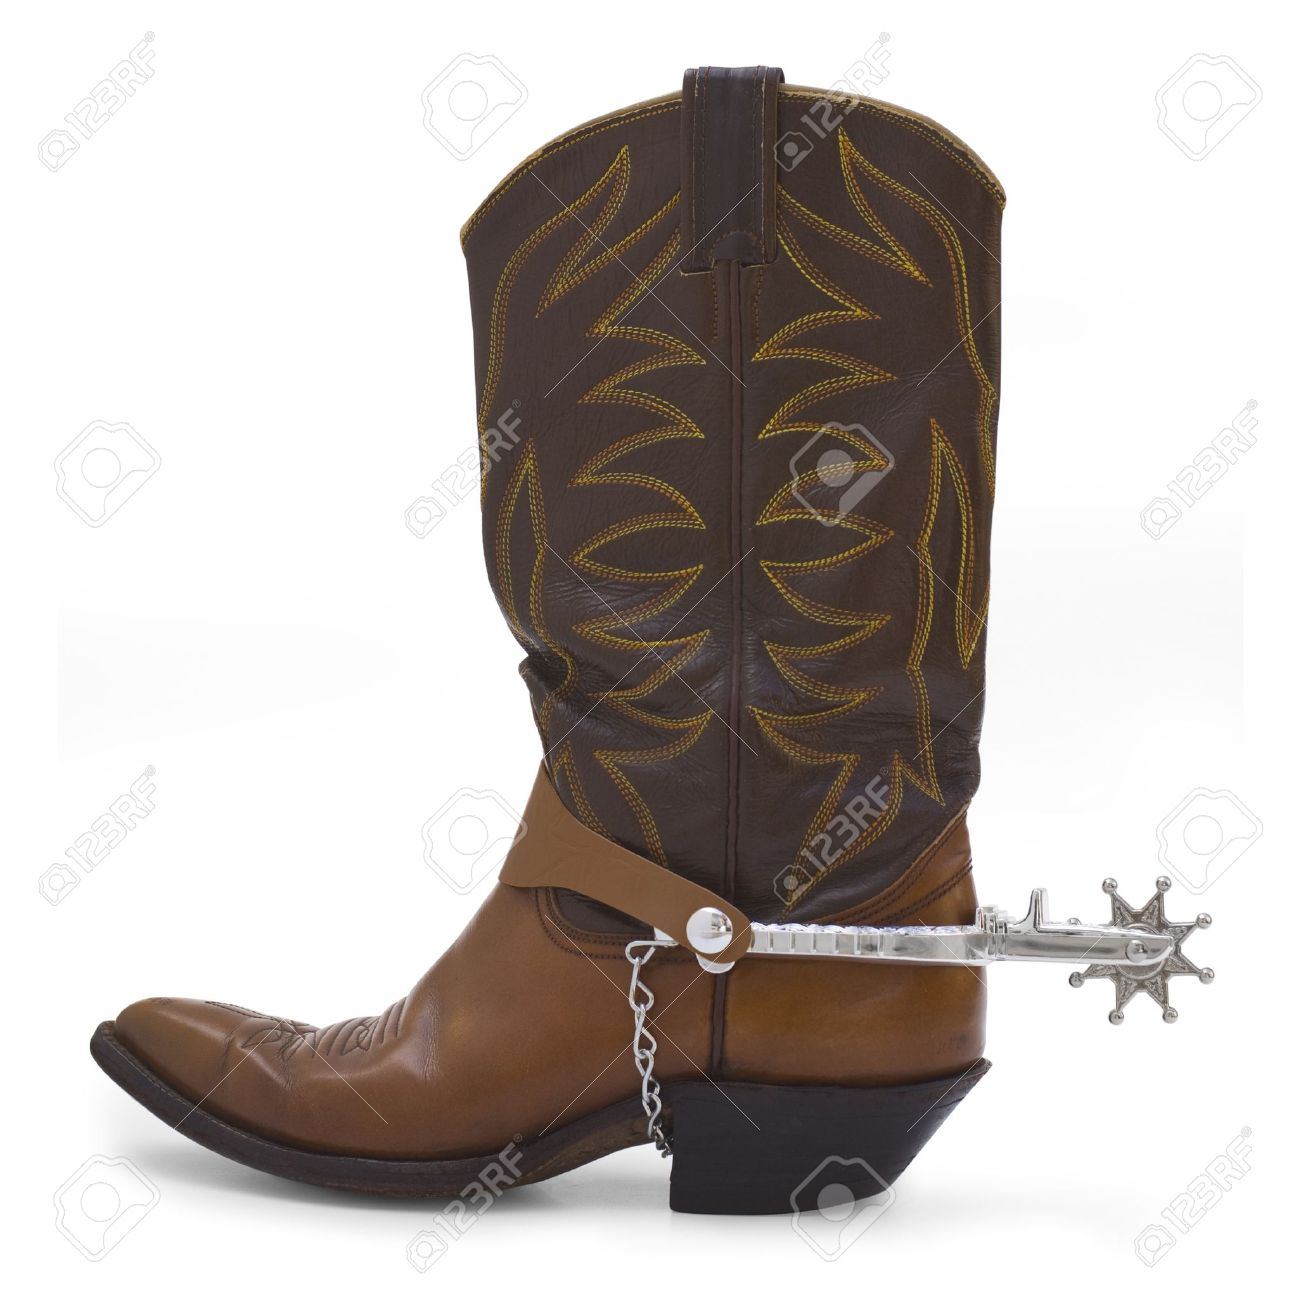 Side view of a brown cowboy boot and silver spur on a white background. Stock Photo - 15442294